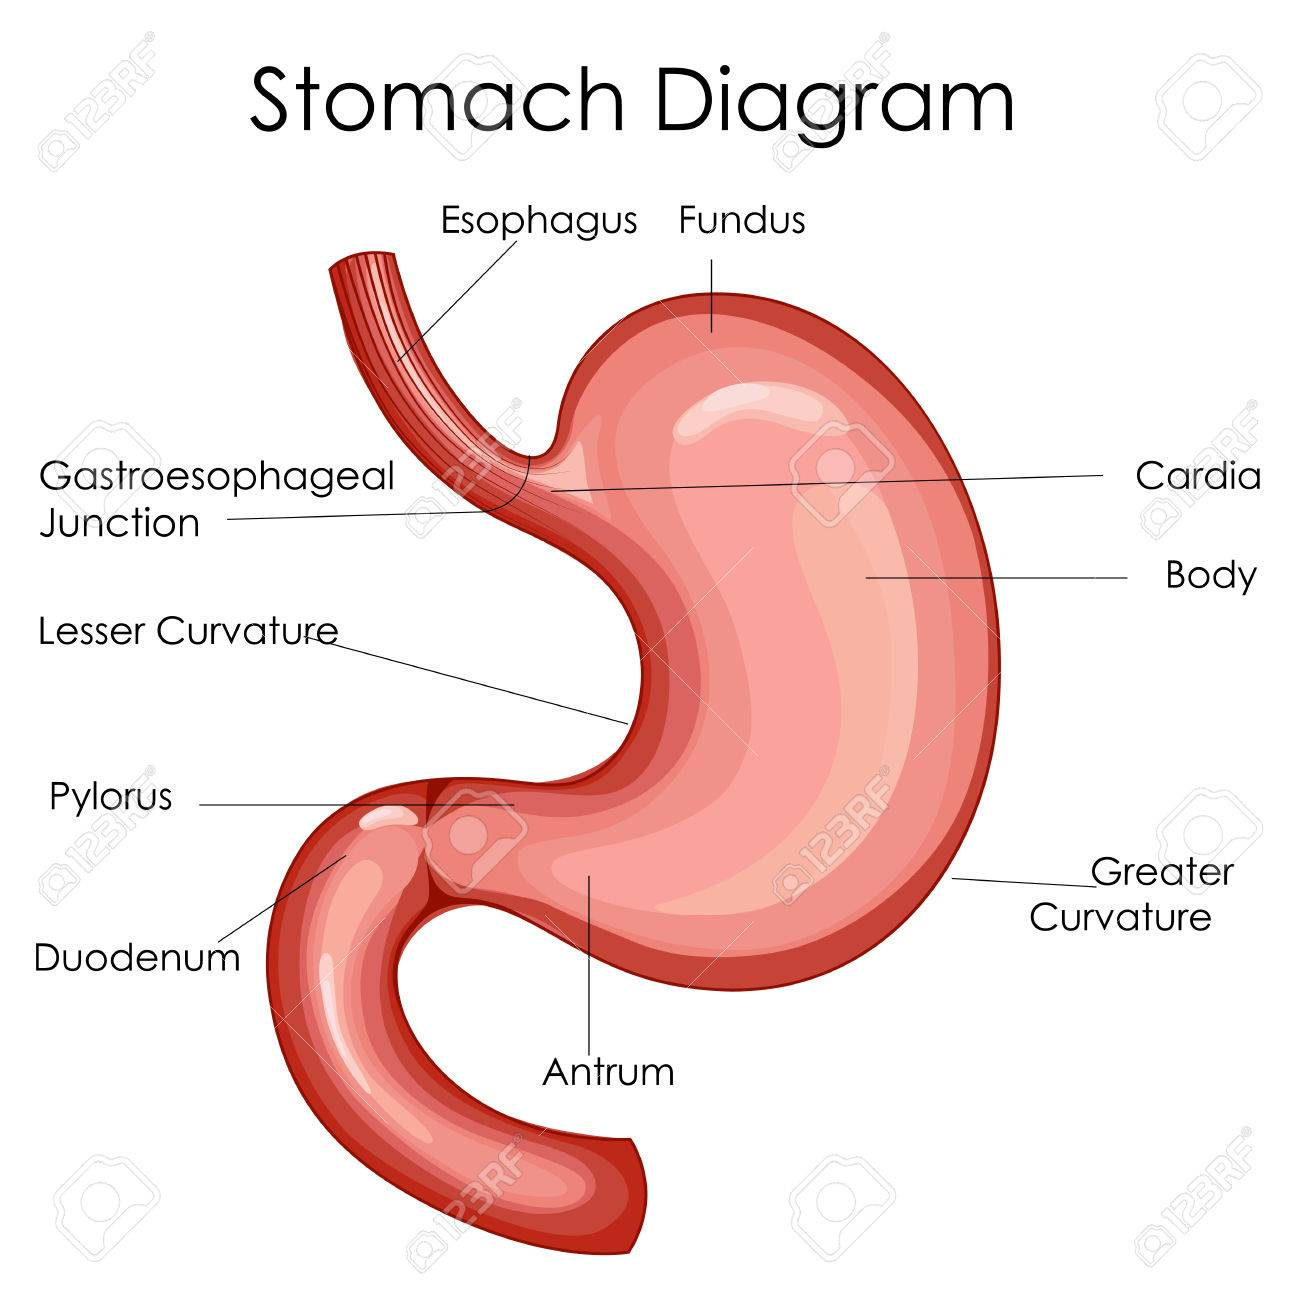 medical education chart of biology for stomach diagram. vector